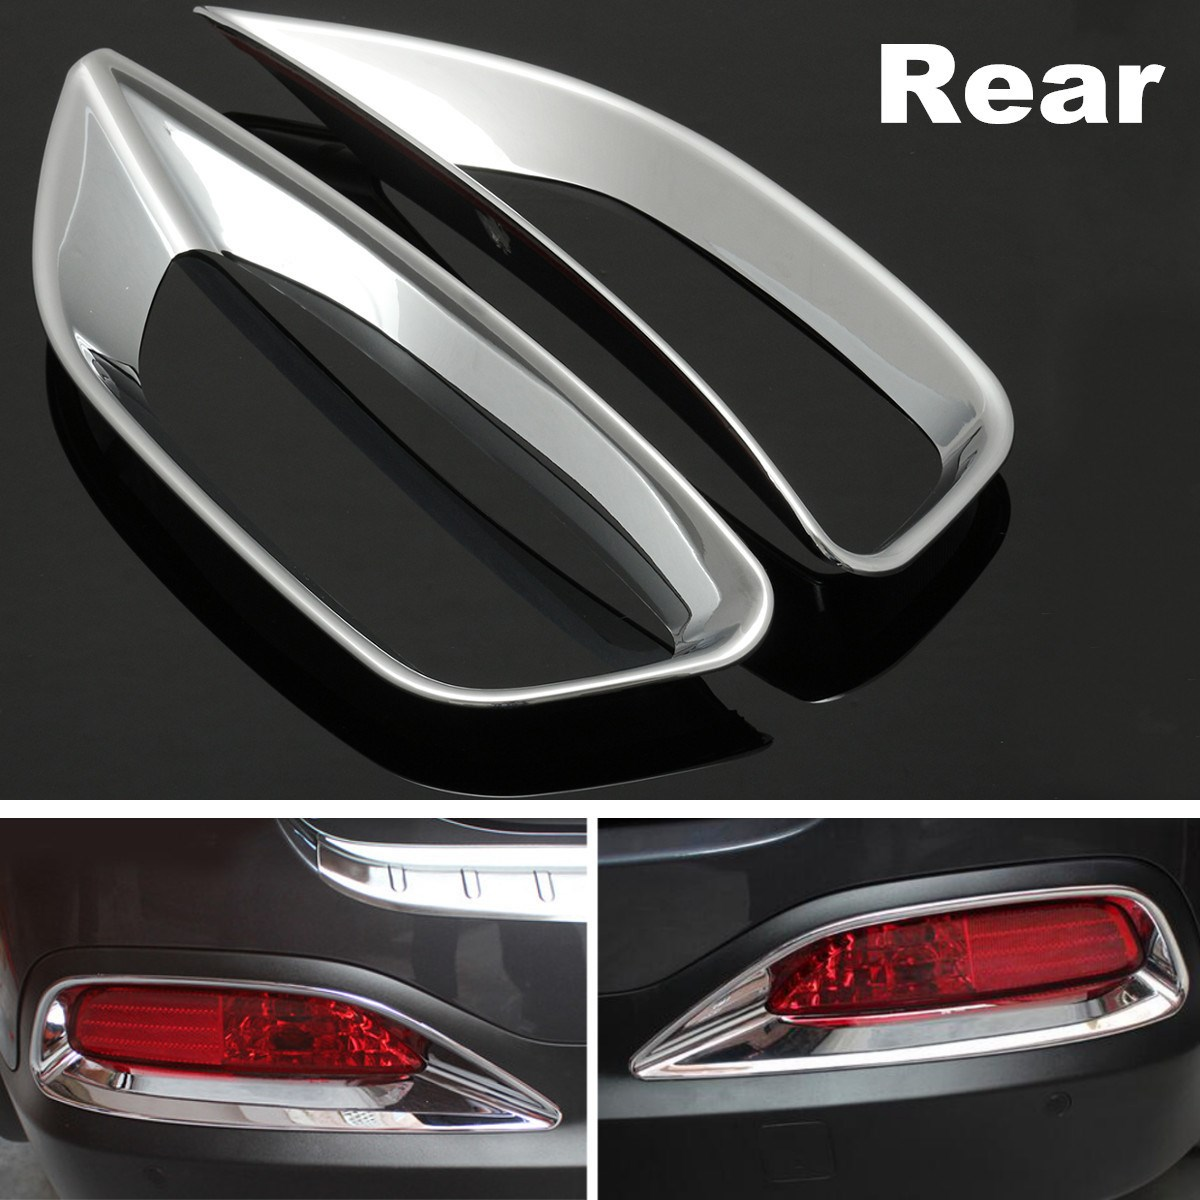 1 Pair Abs Plastic Chrome Tail Rear Fog Light Lamb Trim Decoration Ford Transit Wiring Diagram Honda Accord Accessories Frame Cover For Kia Sorento L 2015 2016 In Lamp Hoods From Automobiles Motorcycles On